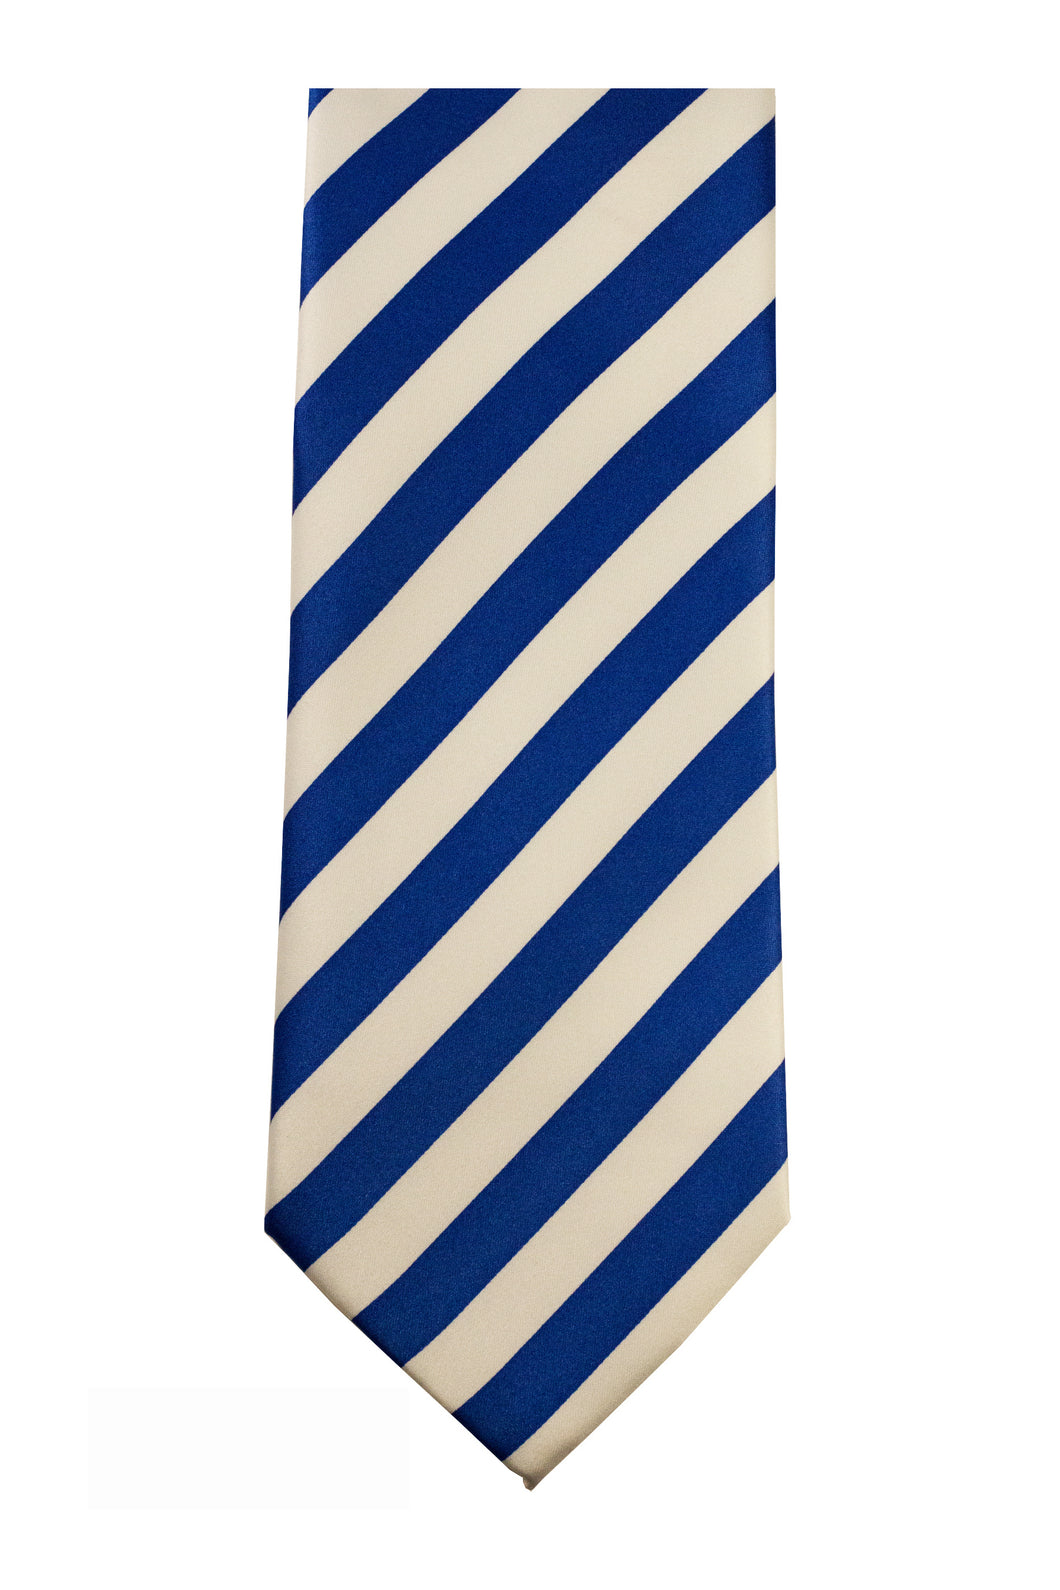 Royal/White Striped Necktie/Handkerchief Set